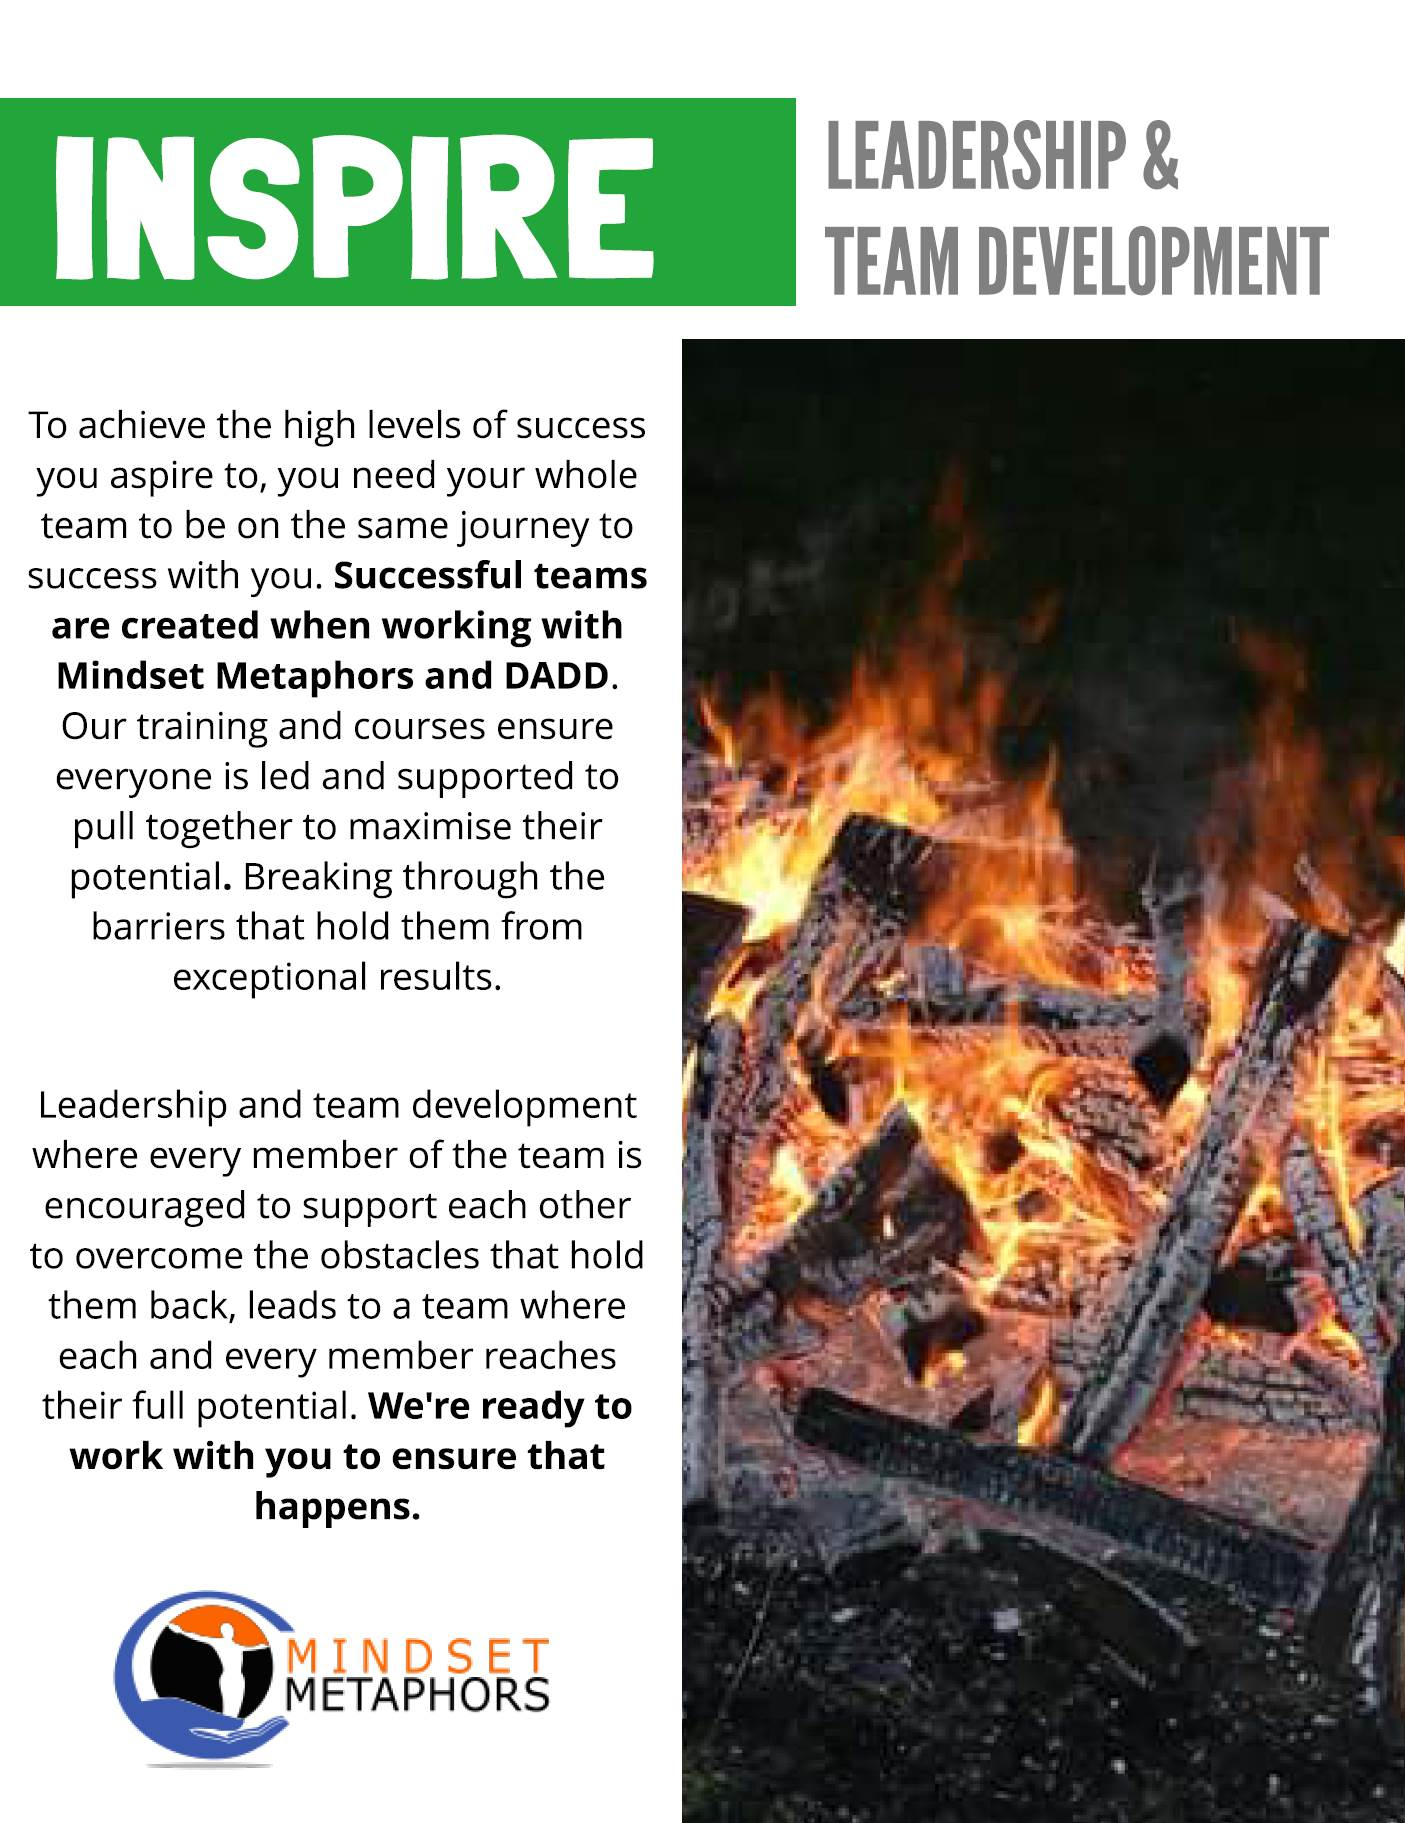 leadership and team development chris dadd lottie moore page 2